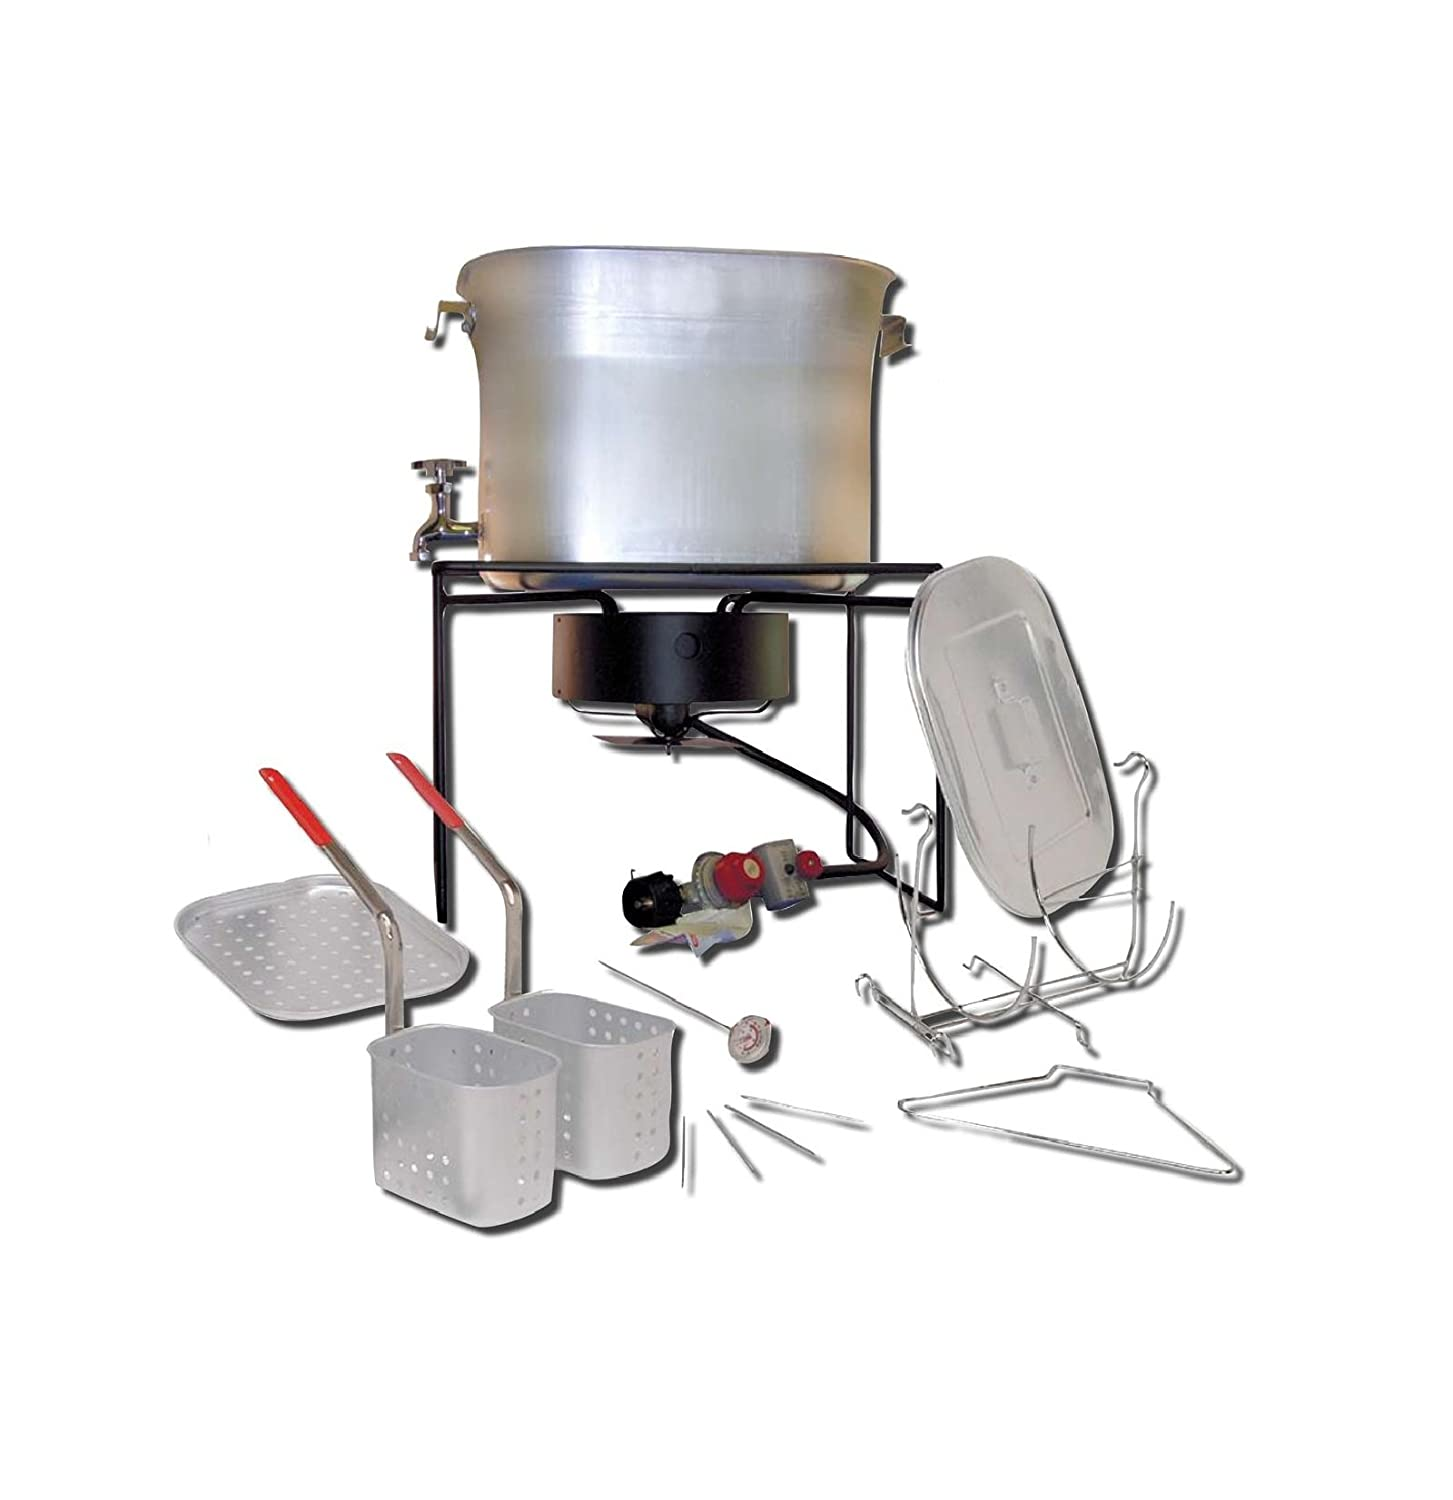 King Kooker 2864 26-Quart Outdoor Chef's Hot Tub with Battery-Operated Timer